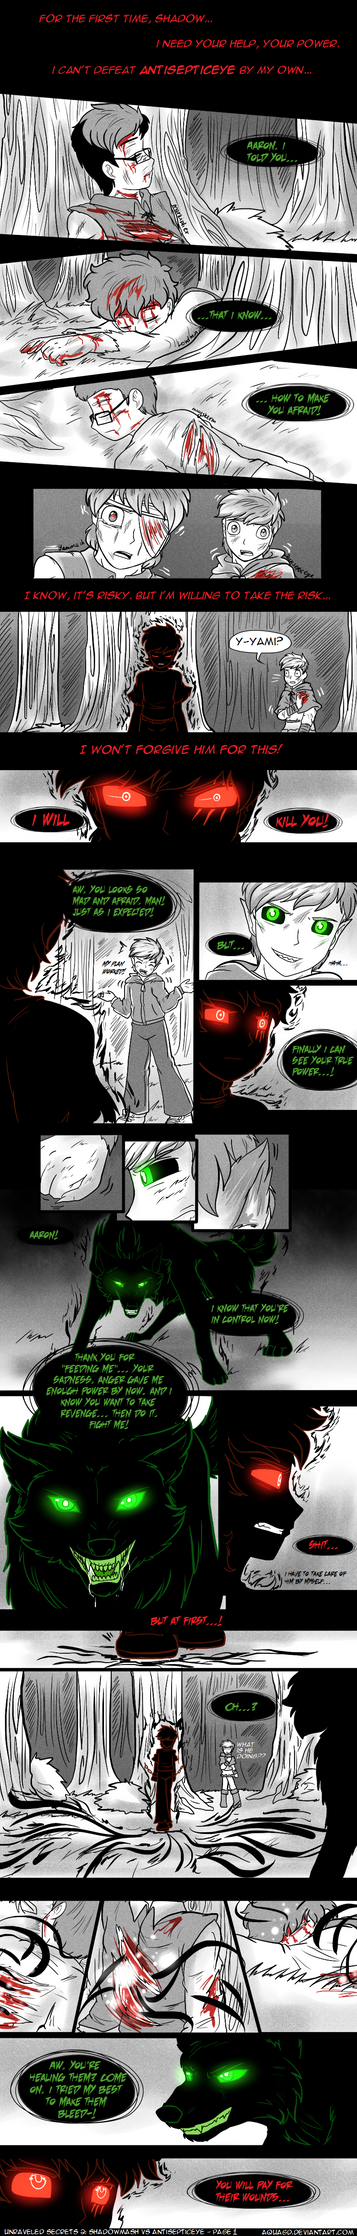 .: US 2: Shadowmash vs Antisepticeye - page 1 :. by AquaGD